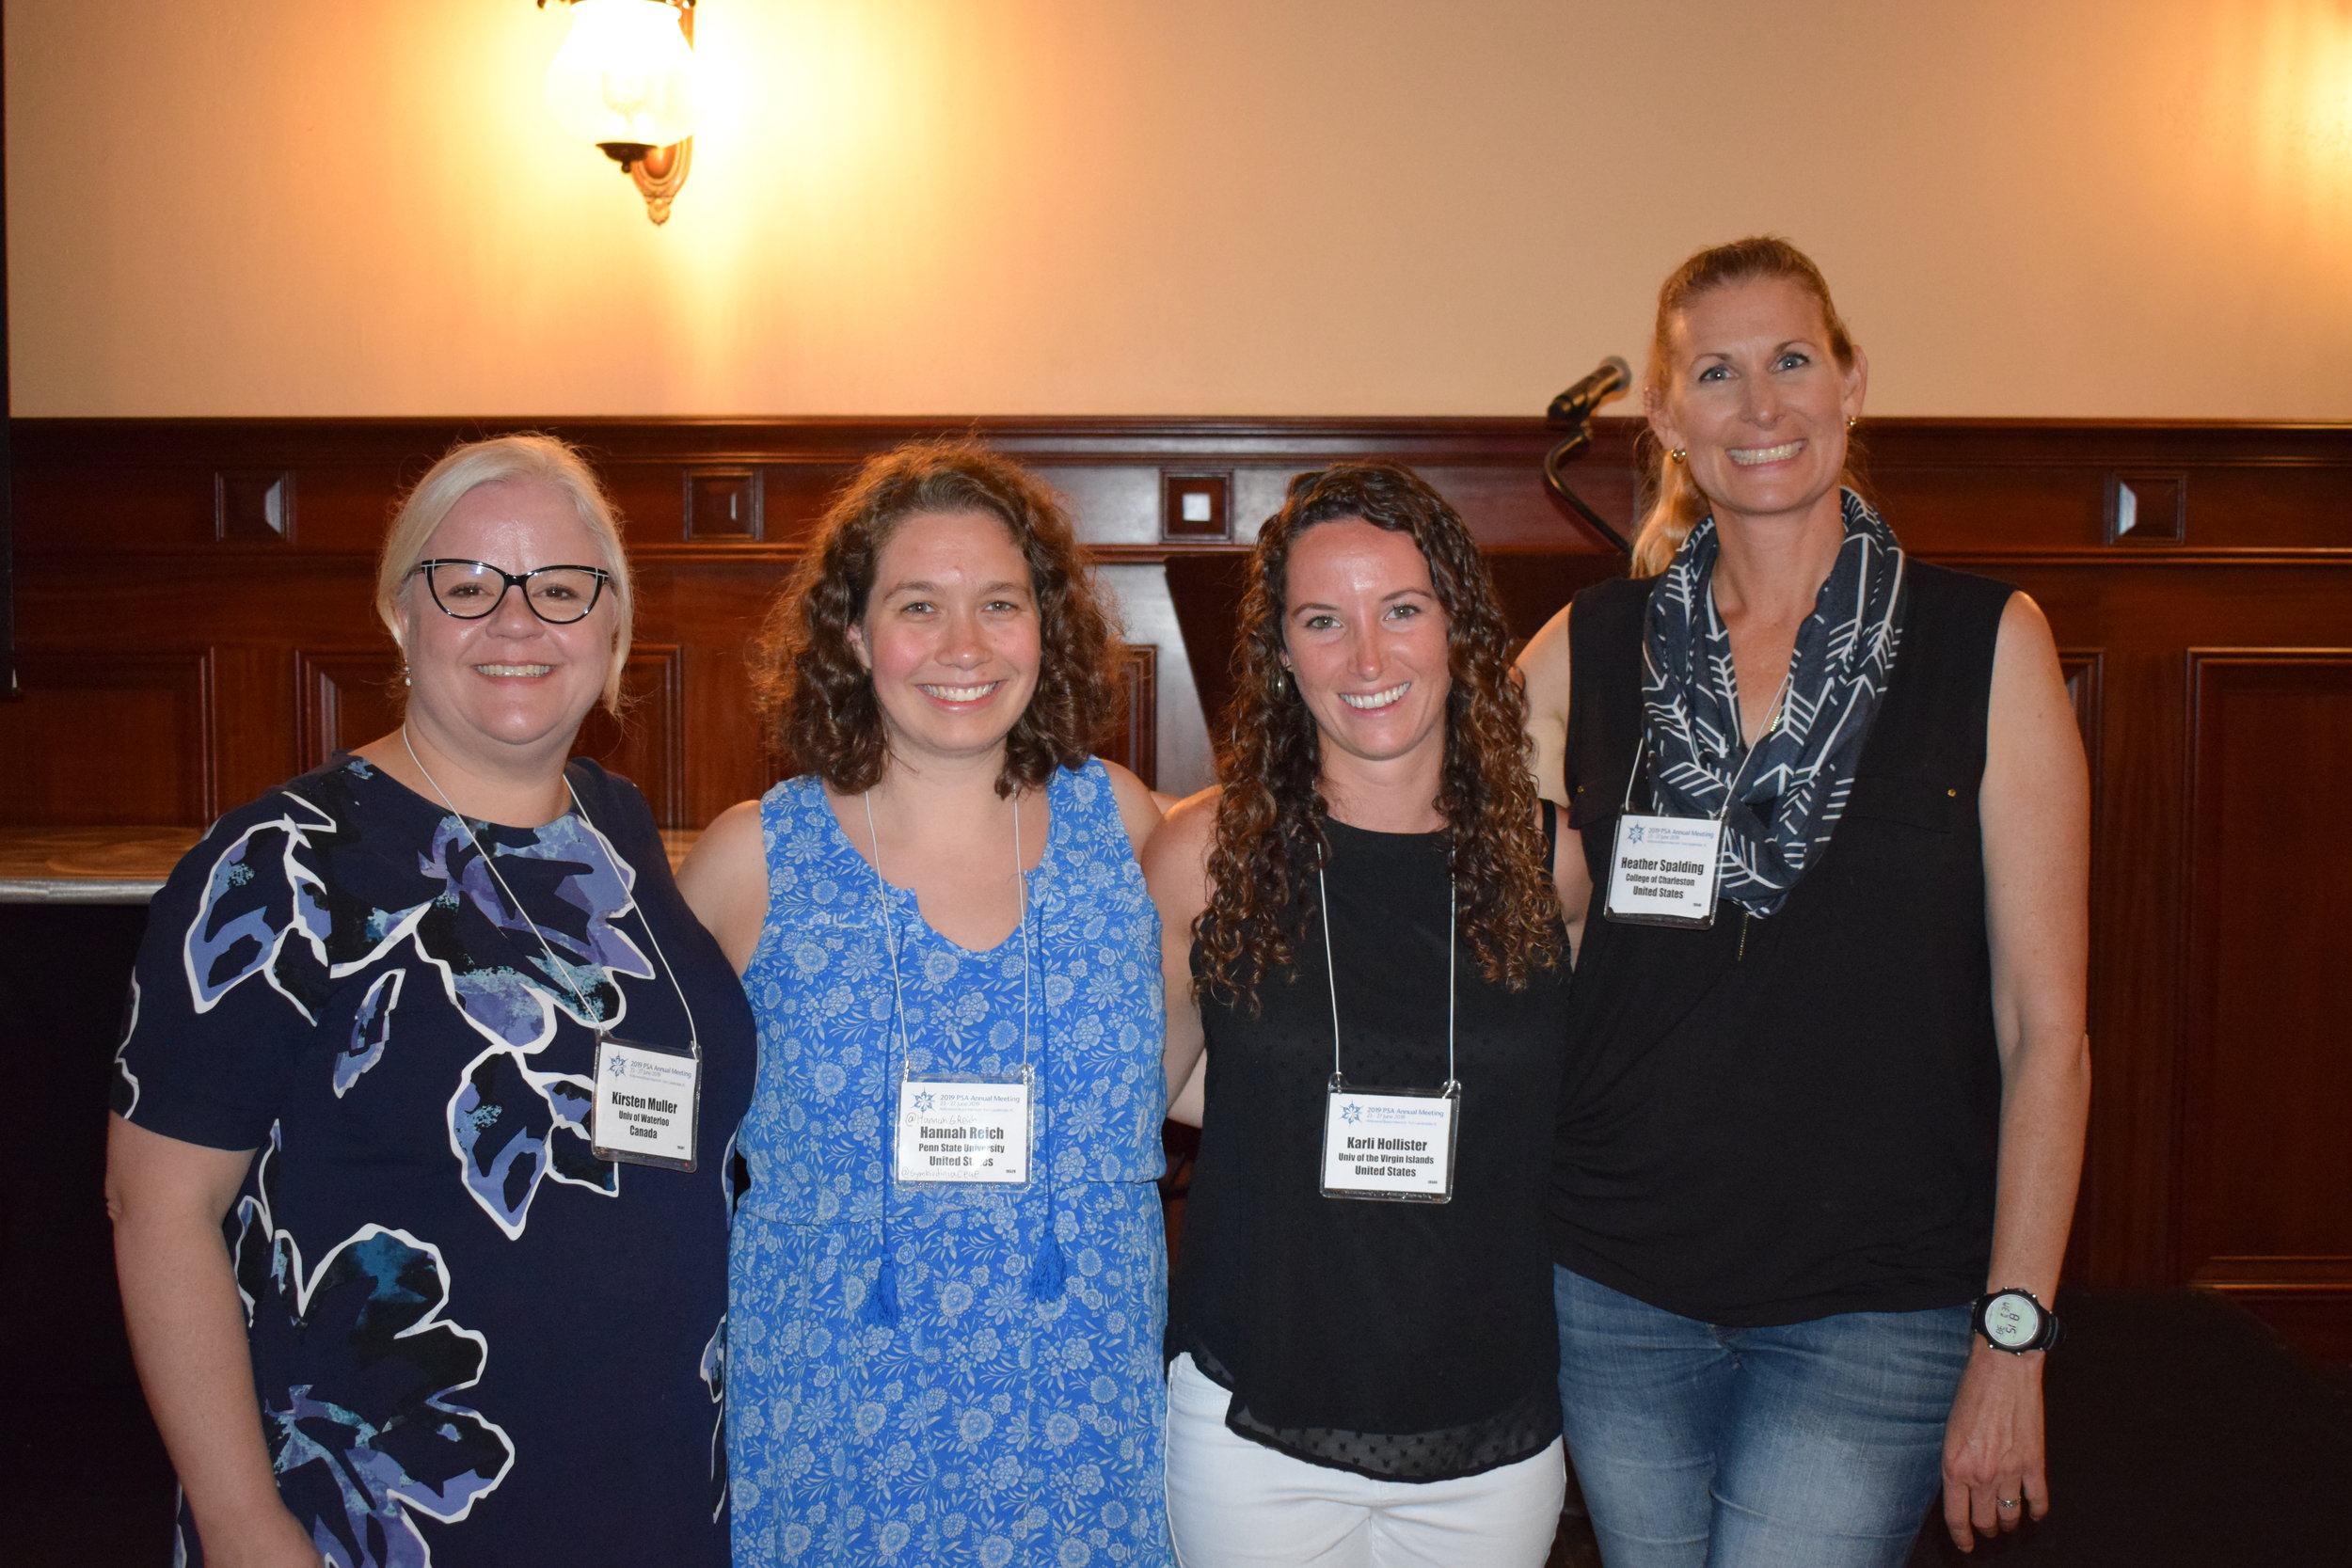 2019 Lewin Award Winner Karli Hollister (second from right) along with PSA President Kirsten Müller (left), 2019 Bold Award Winner Hanna Reich (second from left), and PSA Student Awards Committee Chair Heather Spalding (right)